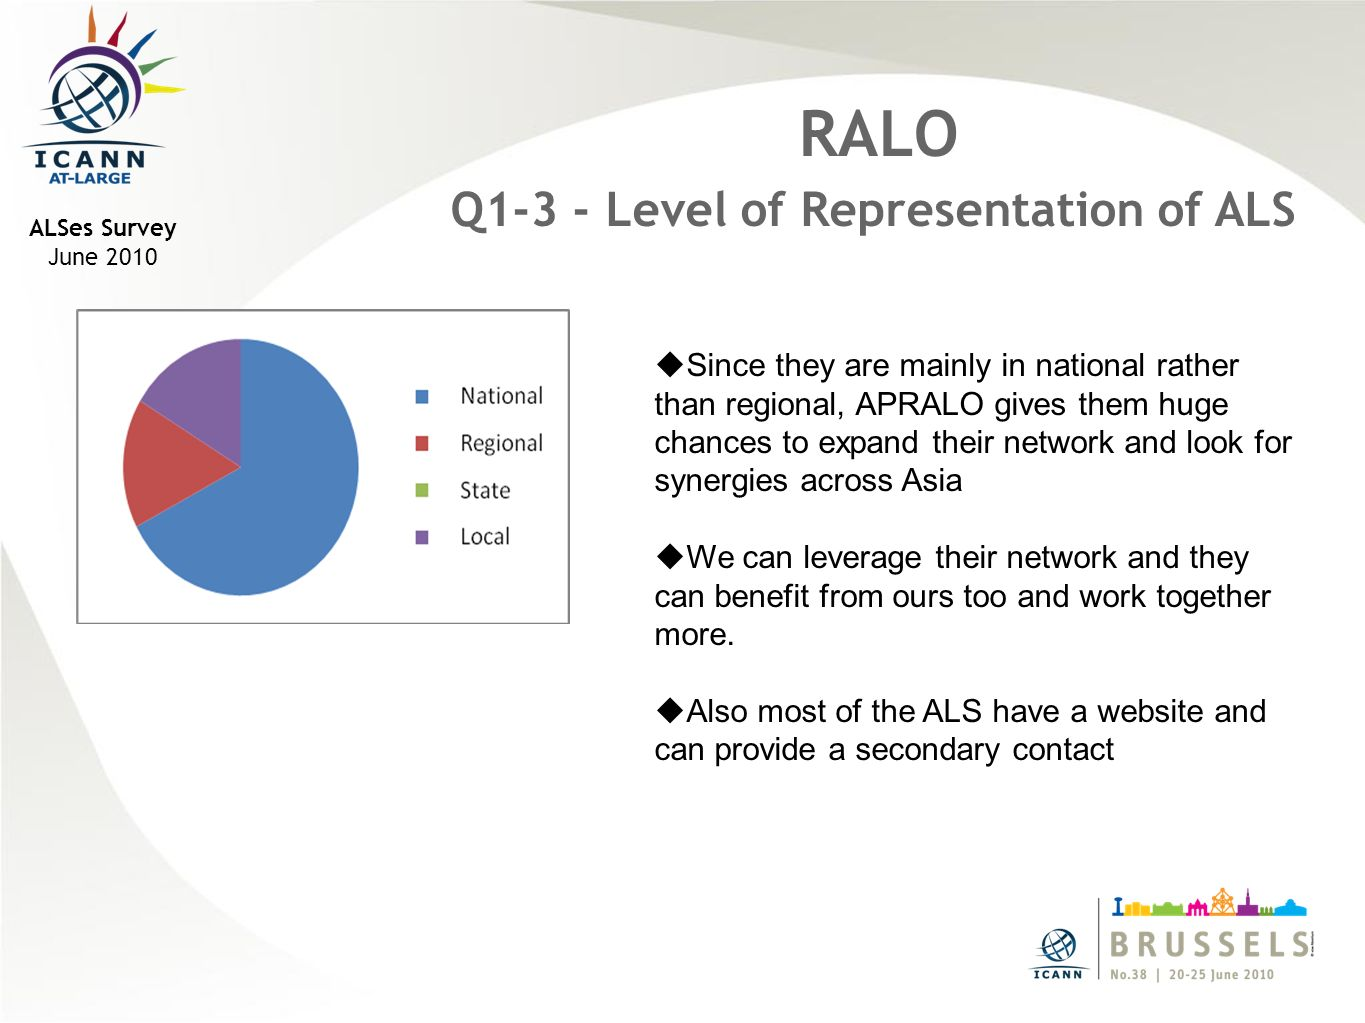 ALSes Survey June 2010 RALO Q1-3 - Level of Representation of ALS Since they are mainly in national rather than regional, APRALO gives them huge chances to expand their network and look for synergies across Asia We can leverage their network and they can benefit from ours too and work together more.